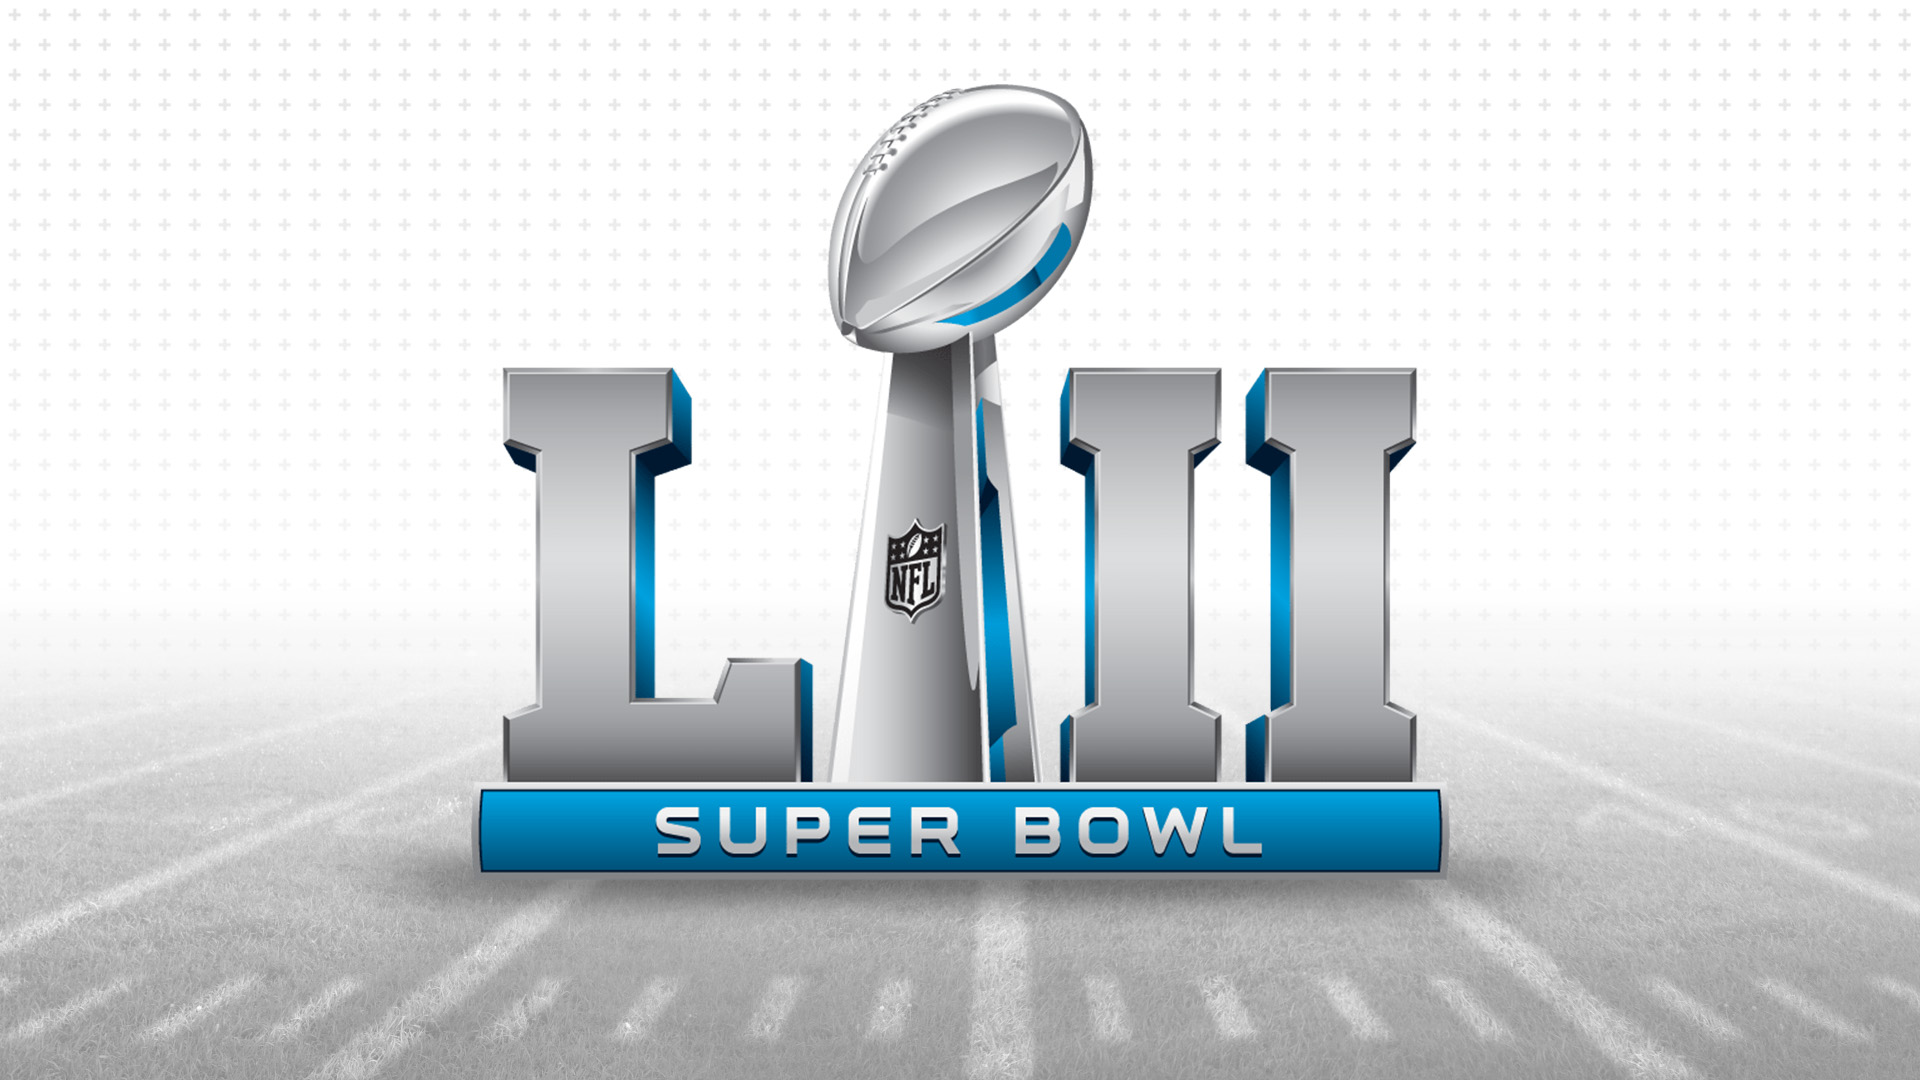 What day is the superbowl this year